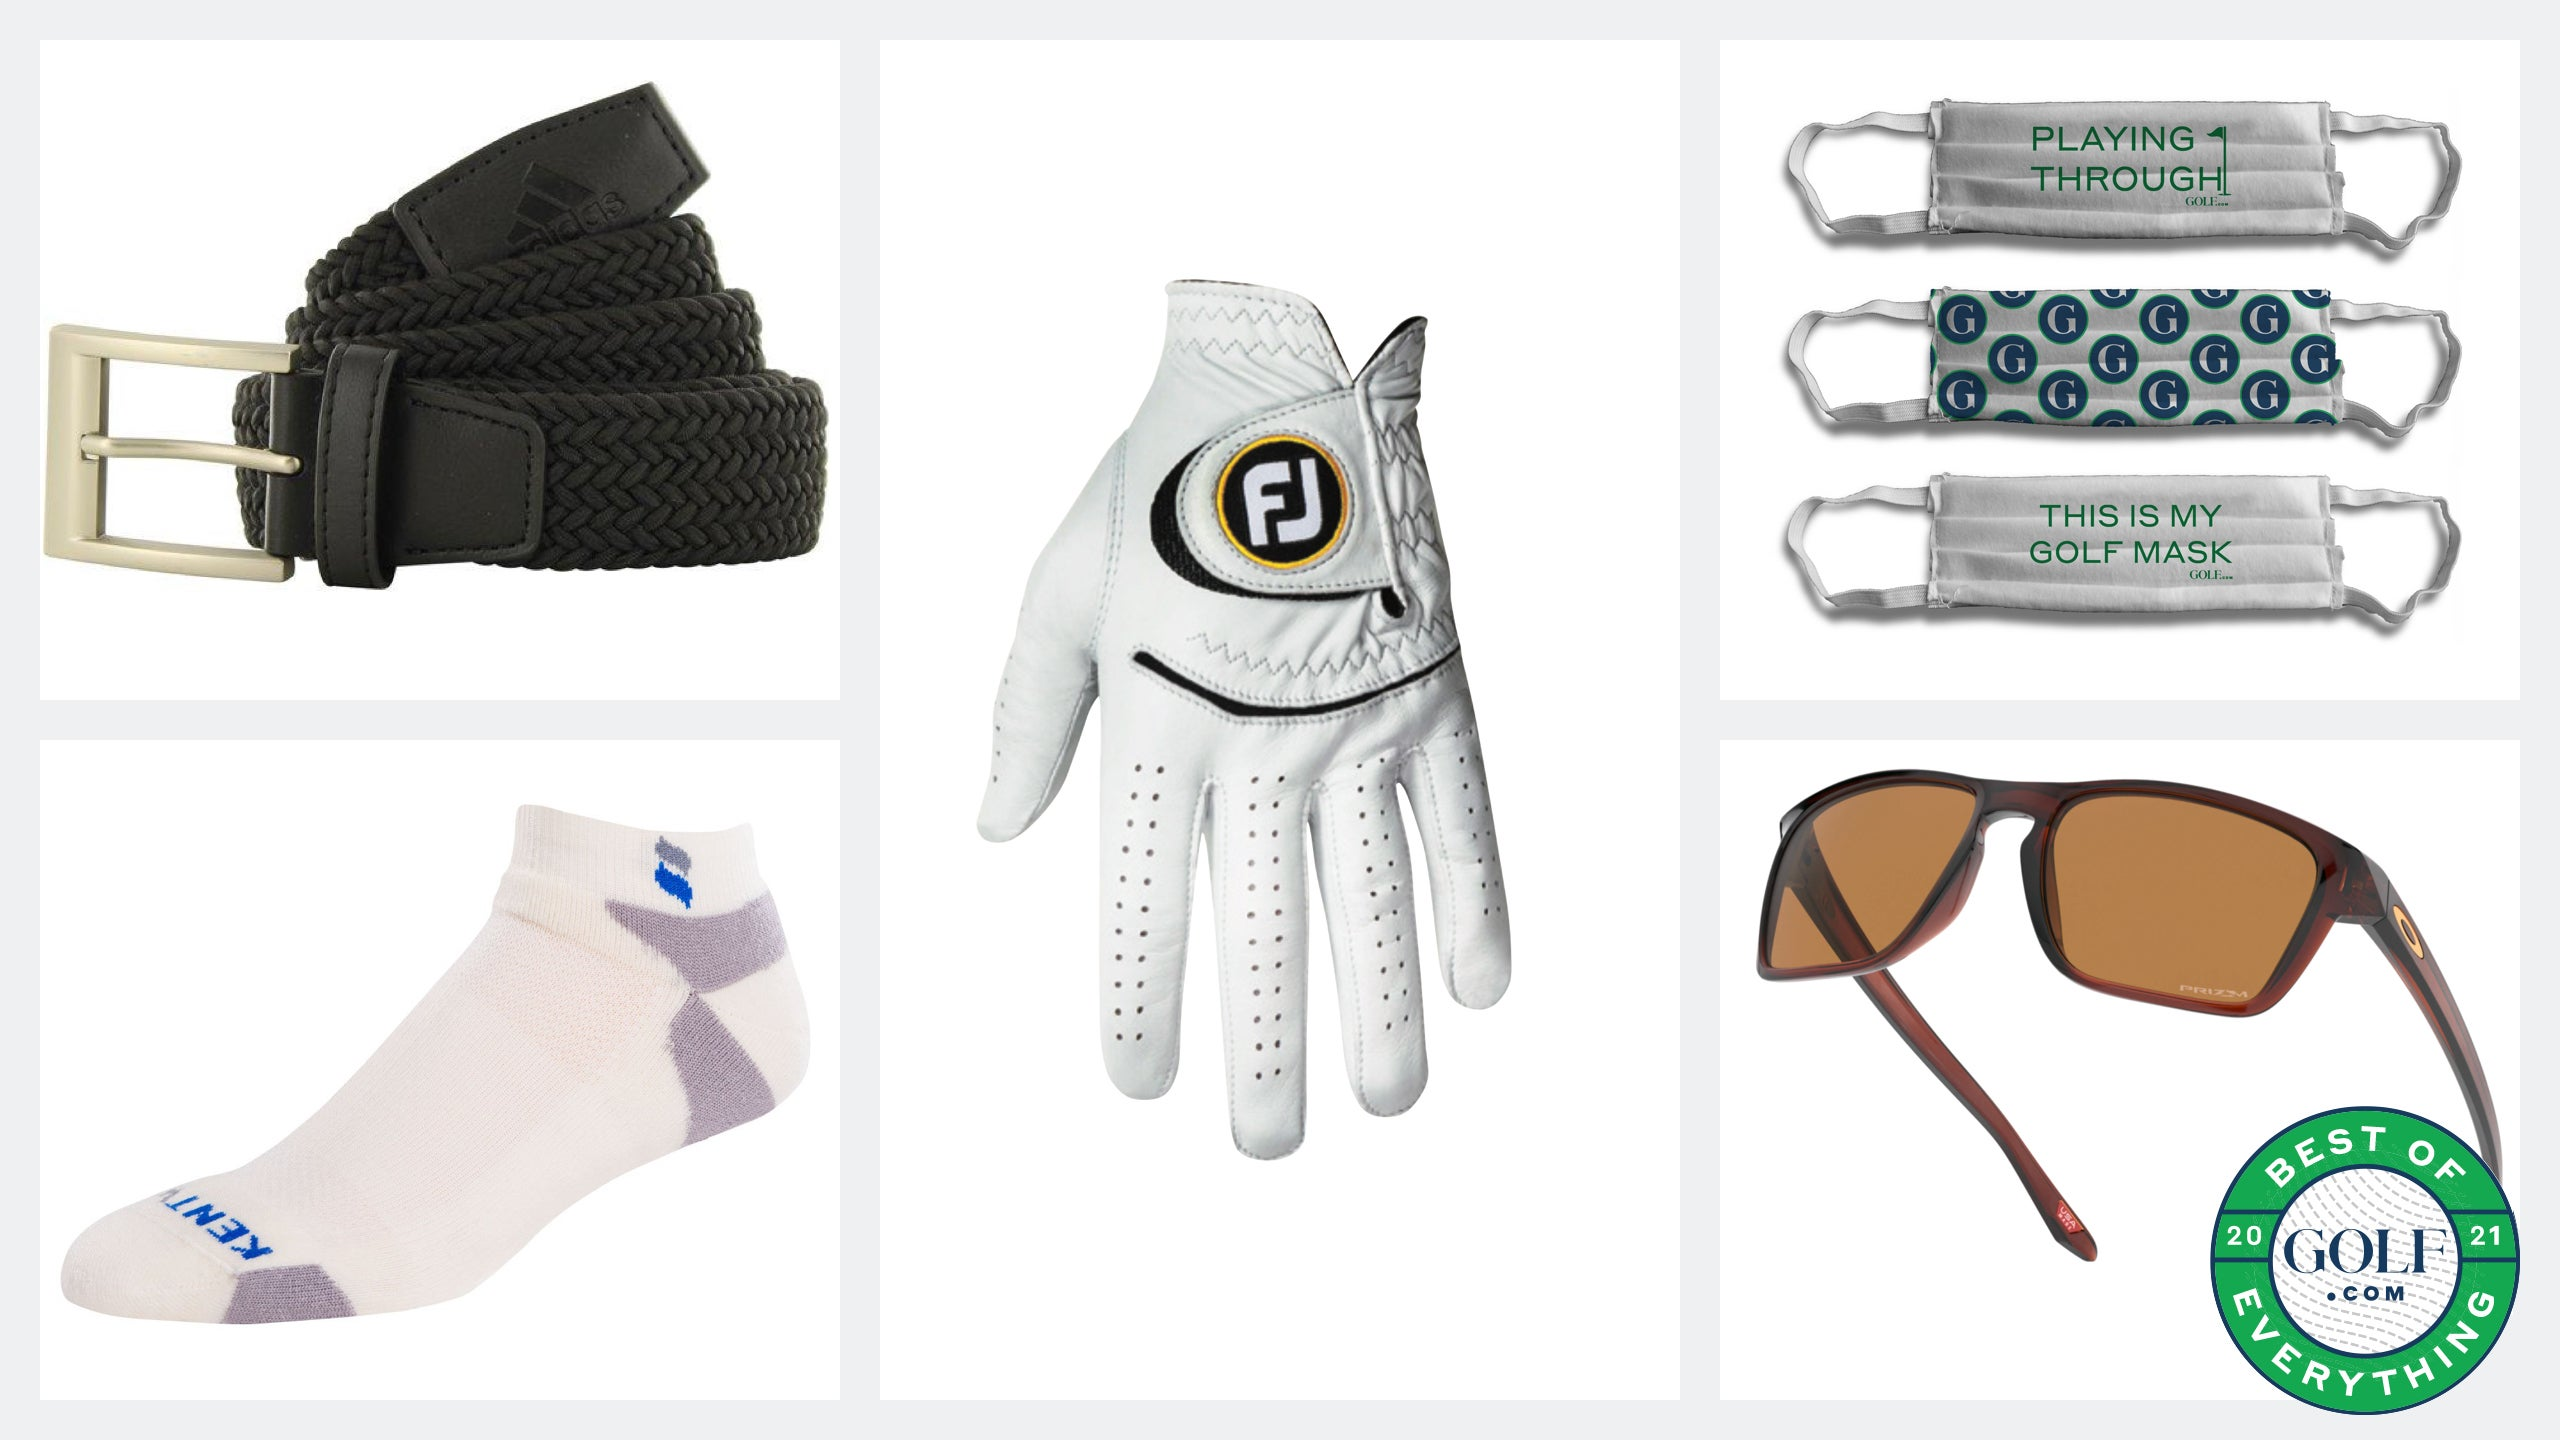 Best items in your golf bag